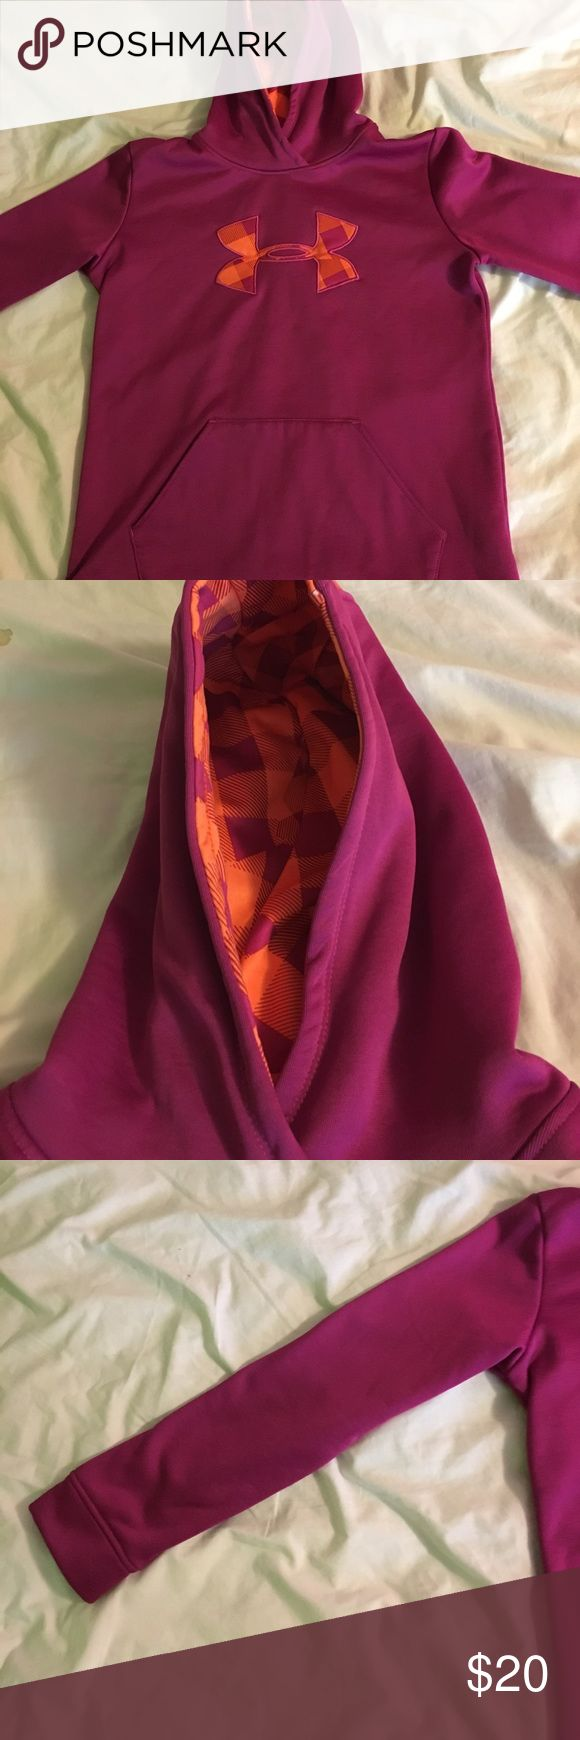 Under Armor hoodie A purple and orange under armor pullover hoodie. Girls size youth large. In great condition!!! Under Armour Jackets & Coats